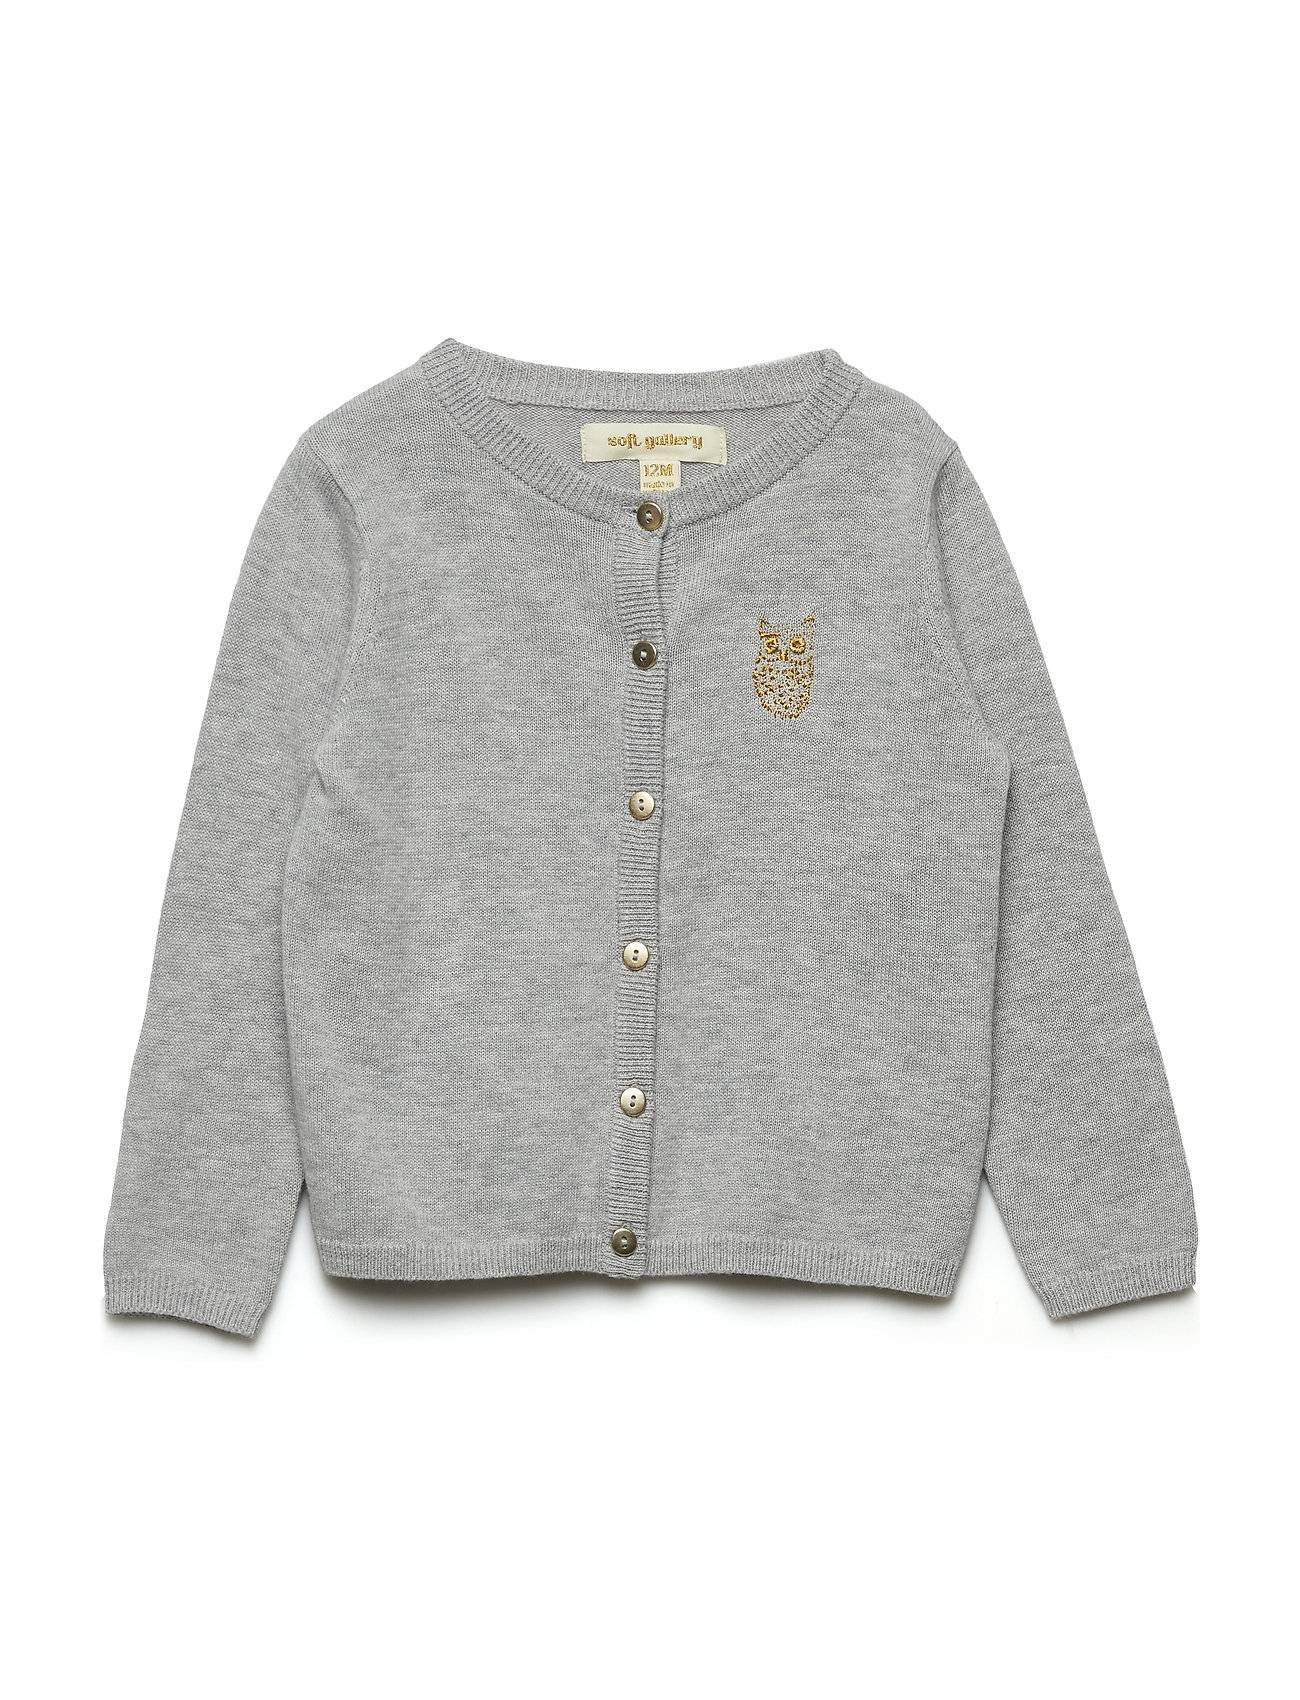 Soft Gallery Carrie Cardigan